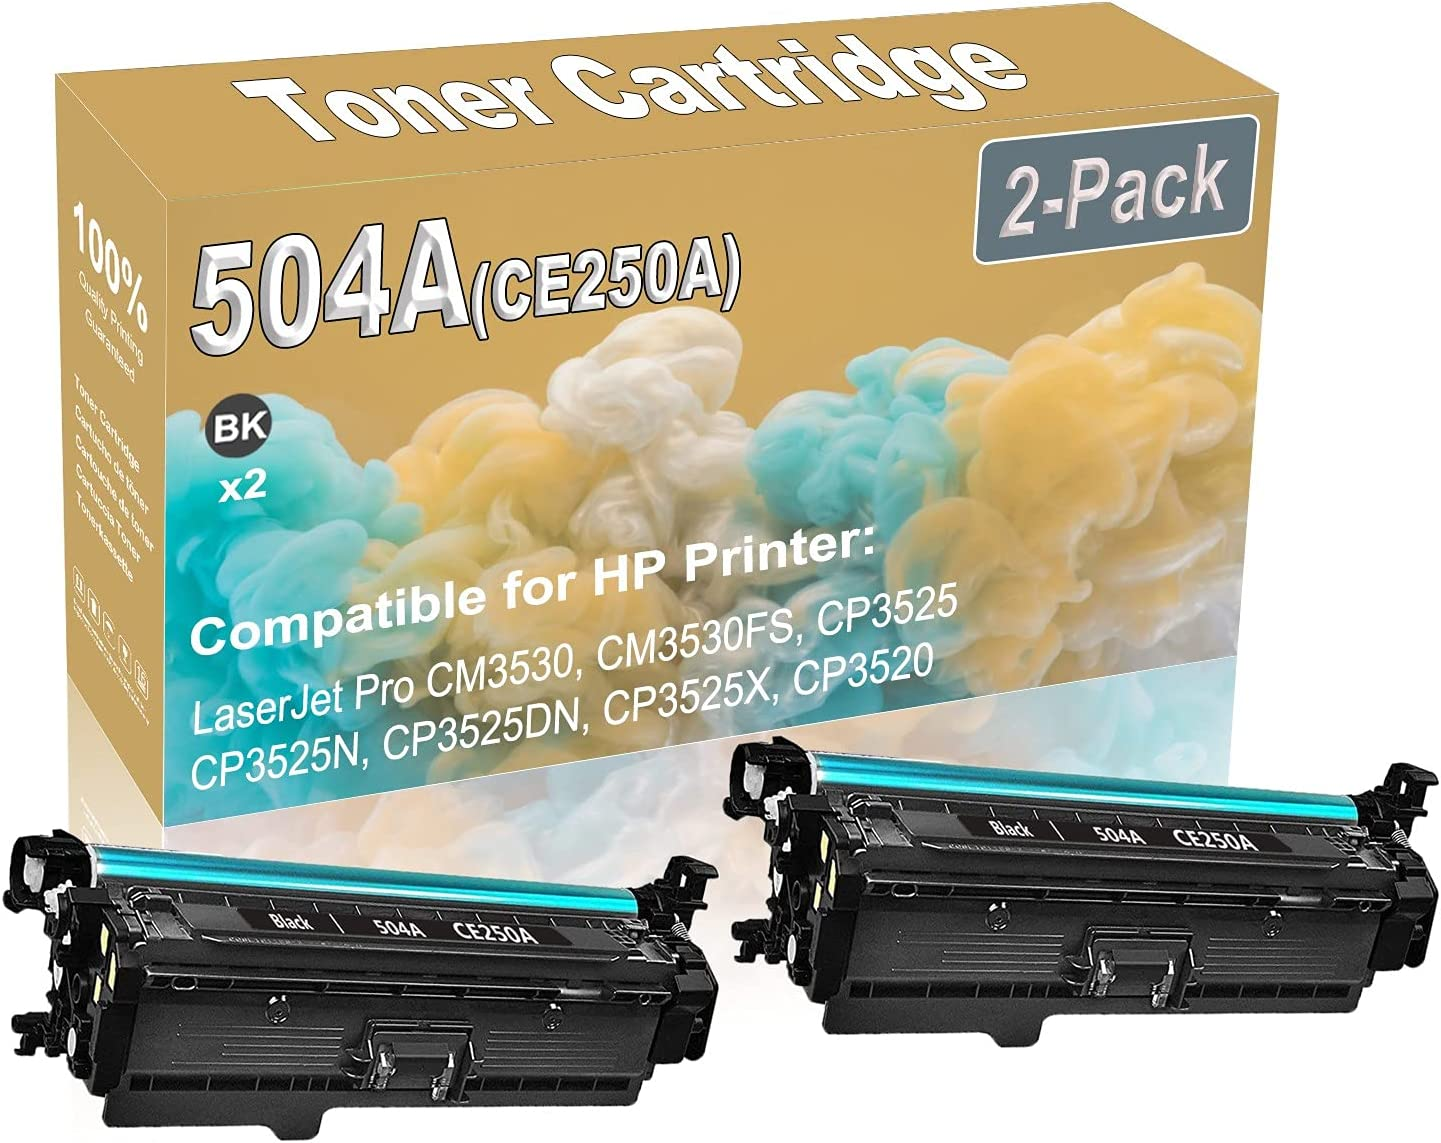 2-Pack (Black) Compatible High Yield 504A (CE250A) Printer Toner Cartridge use for HP CM3530 CM3530FS Printers